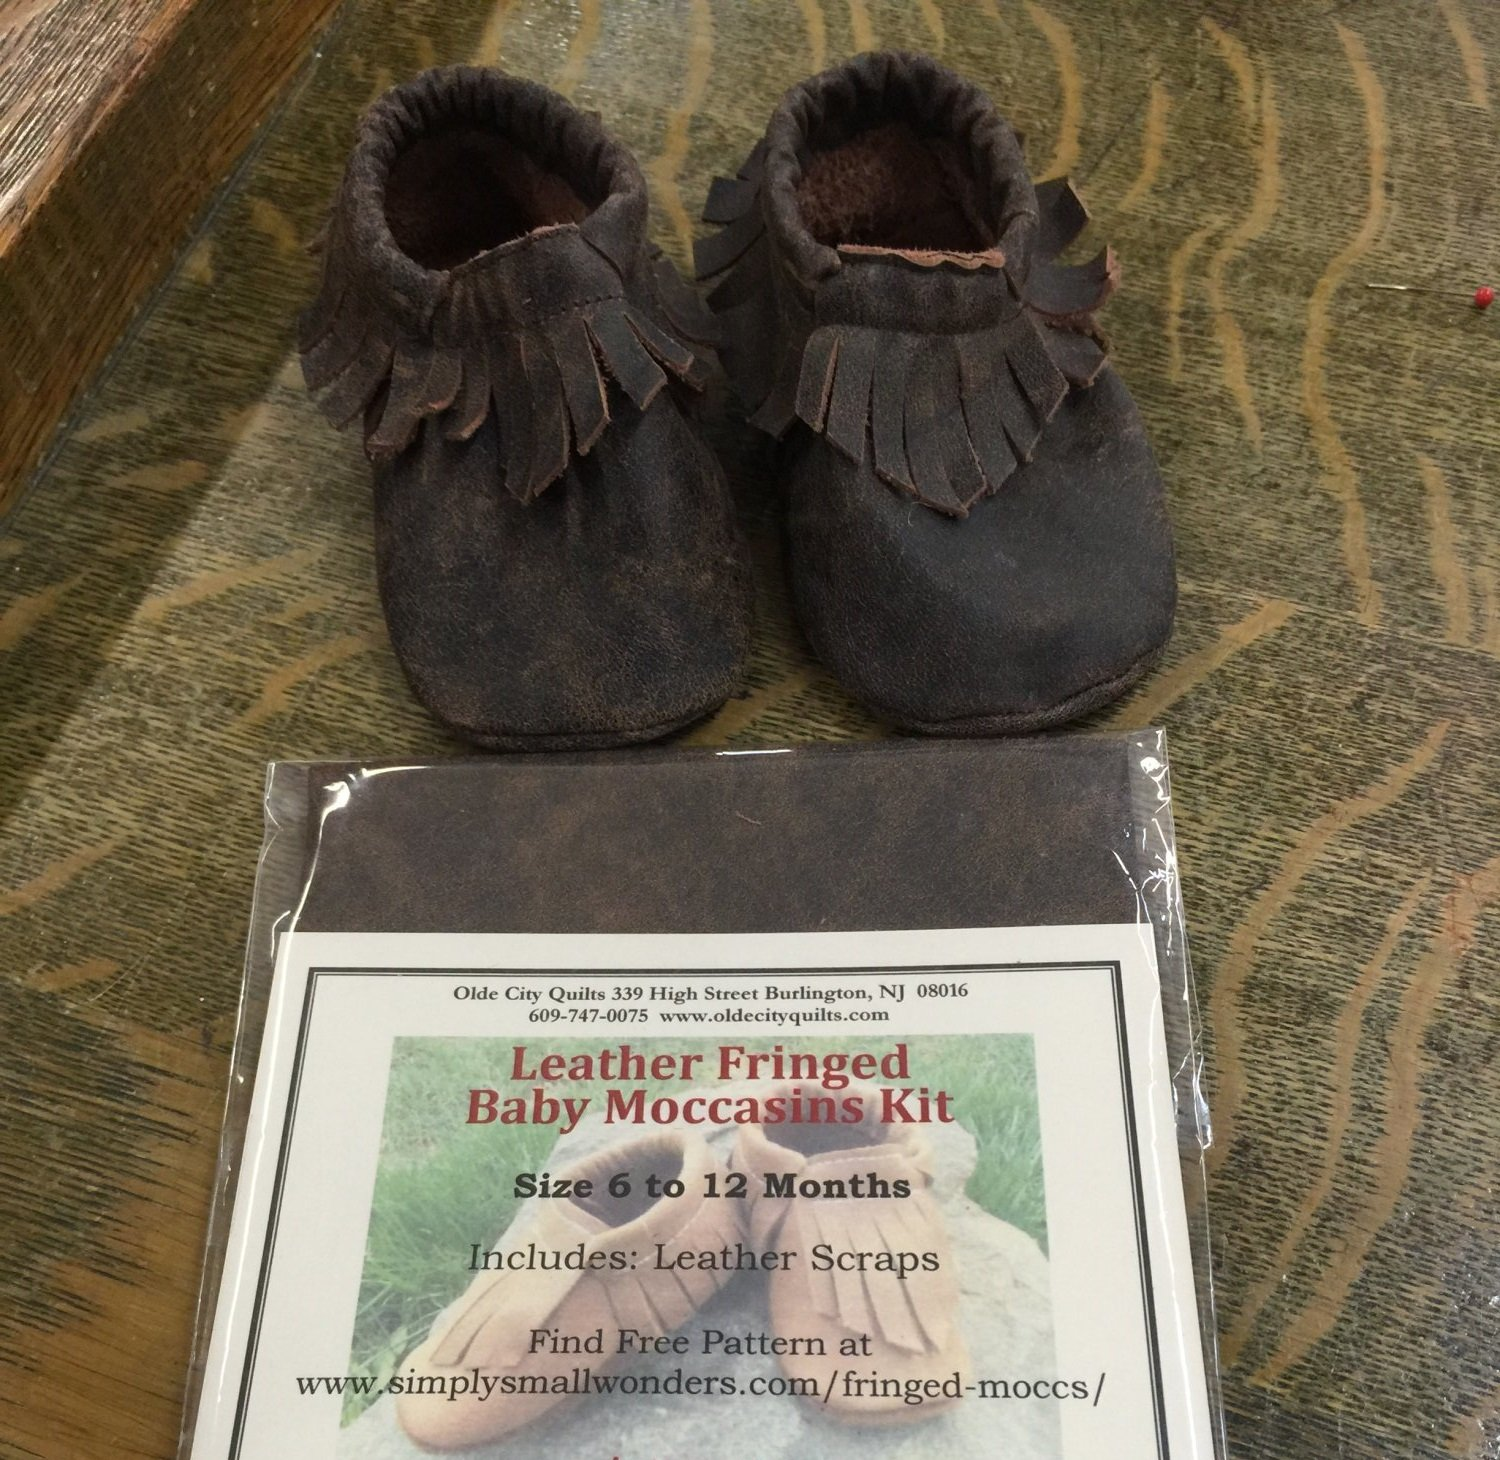 Leather Fringed Baby Moccasins Kit